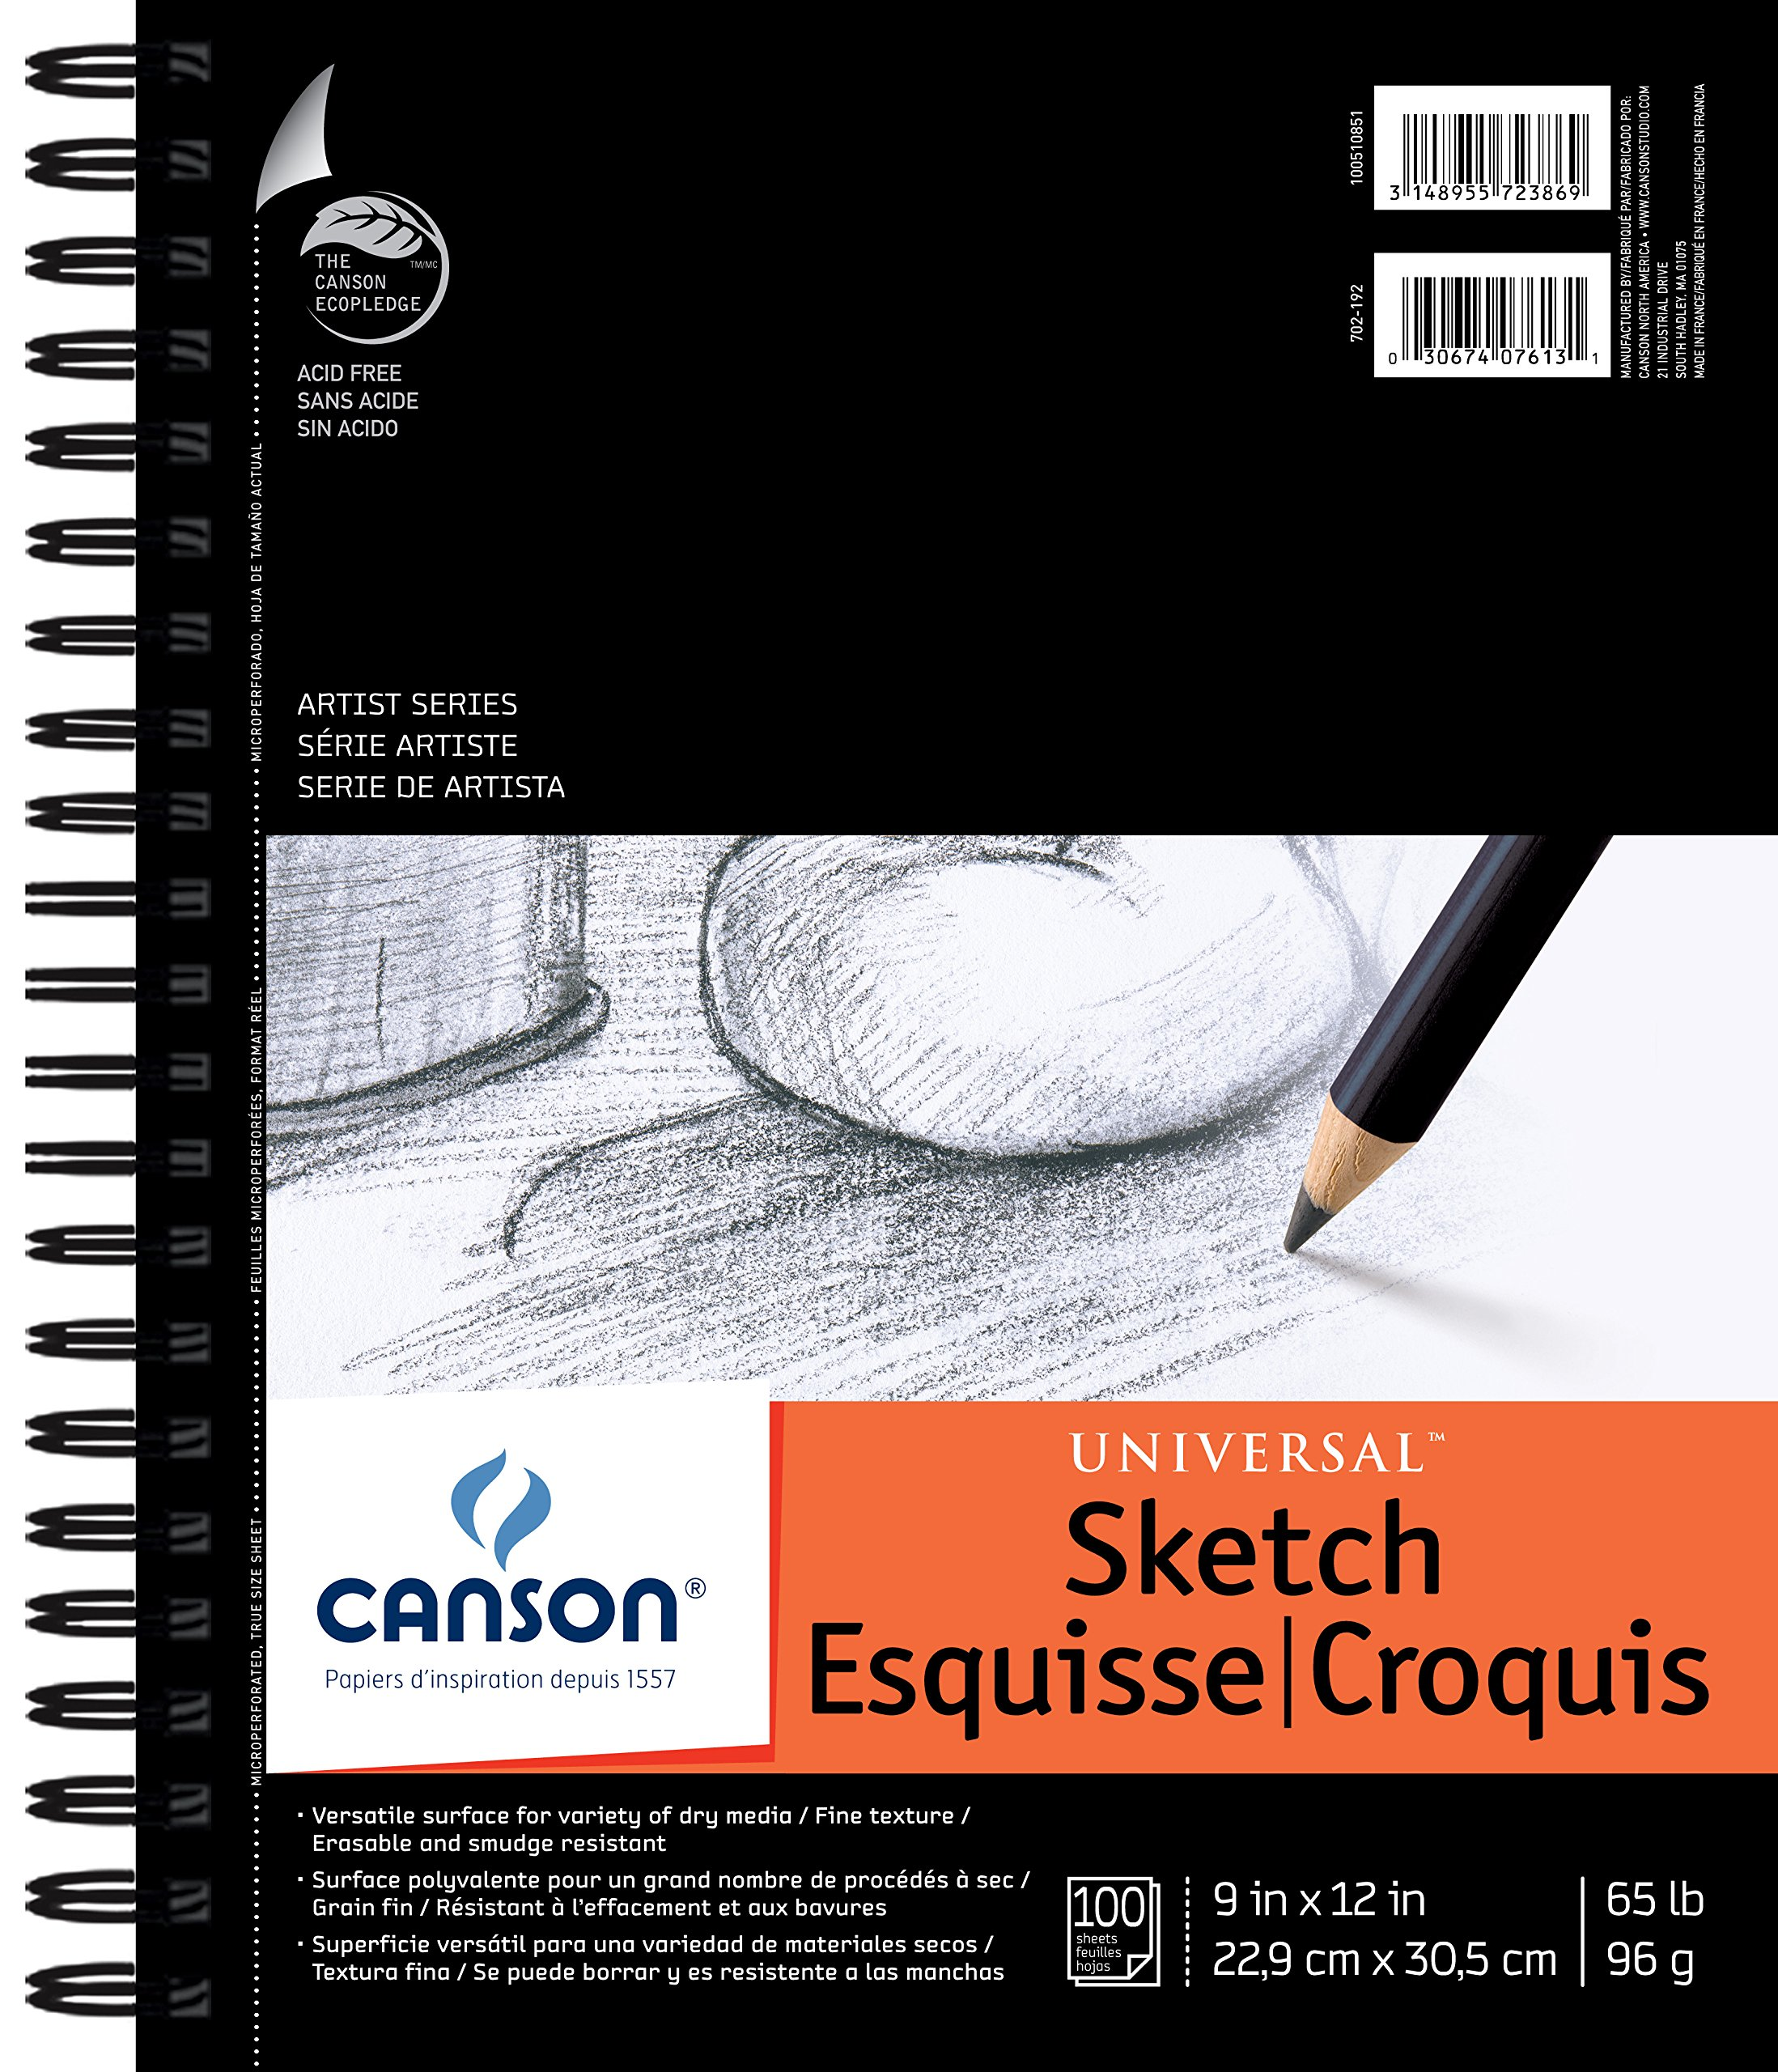 Canson Artist Series Universal Paper Sketch Pad, for Pencil and Charcoal, Micro-Perforated, Side Wire Bound, 65 Pound, 9 x 12 Inch, 100 Sheets by Canson